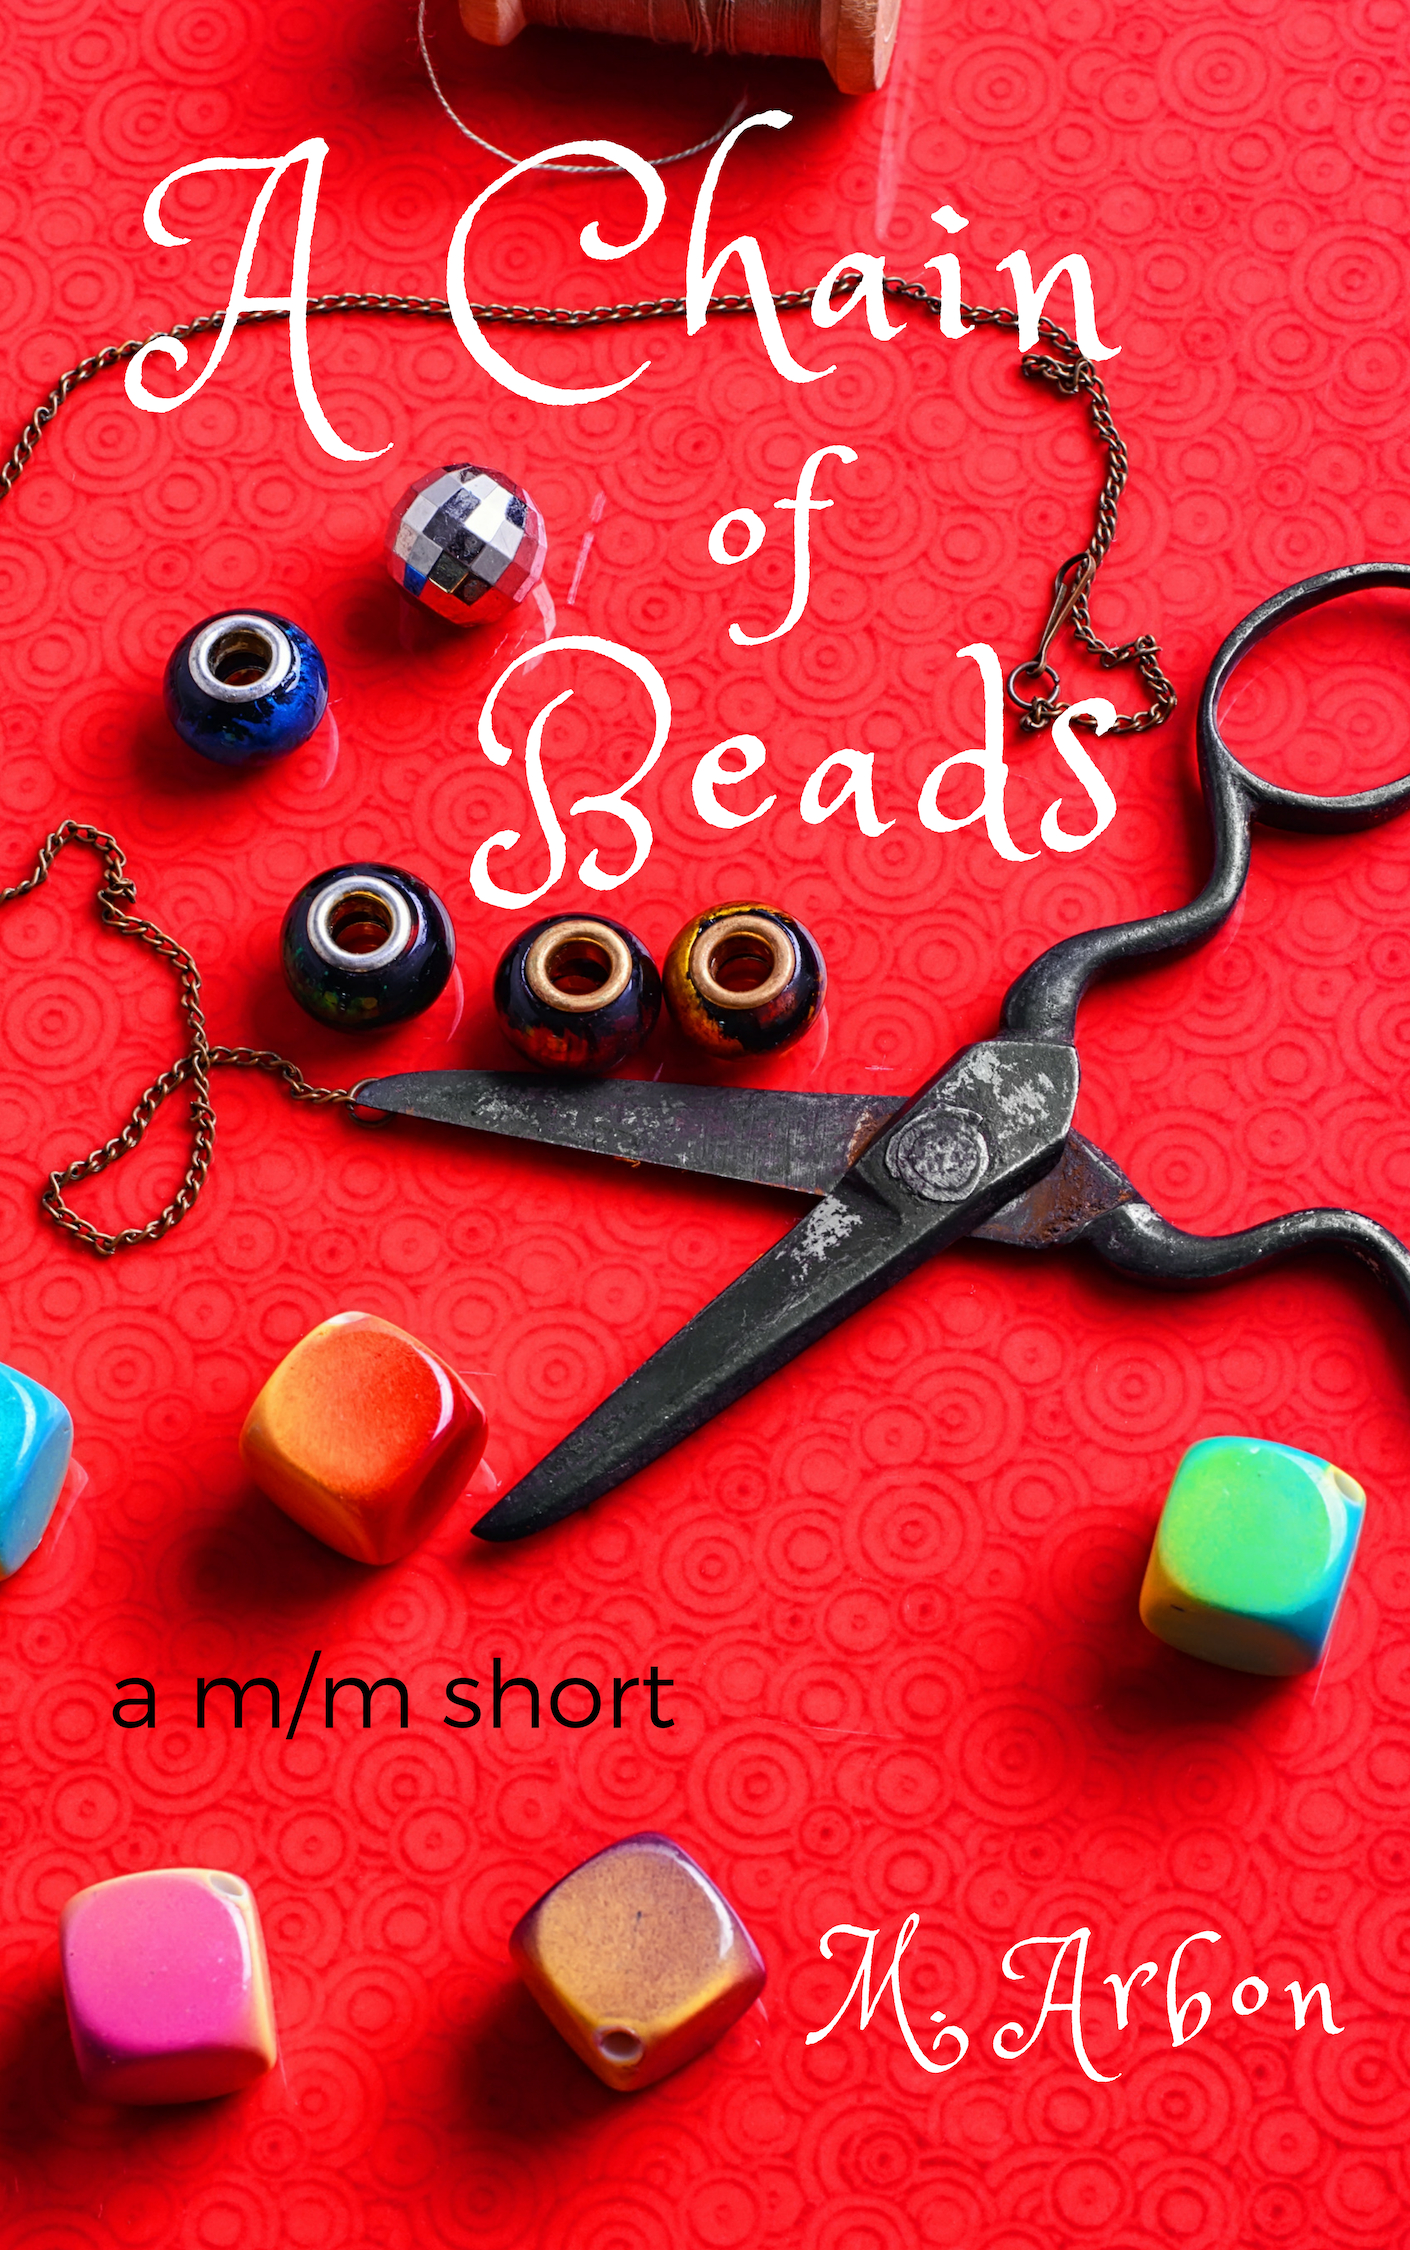 Cover of A Chain of Beads, showing beads and scissors